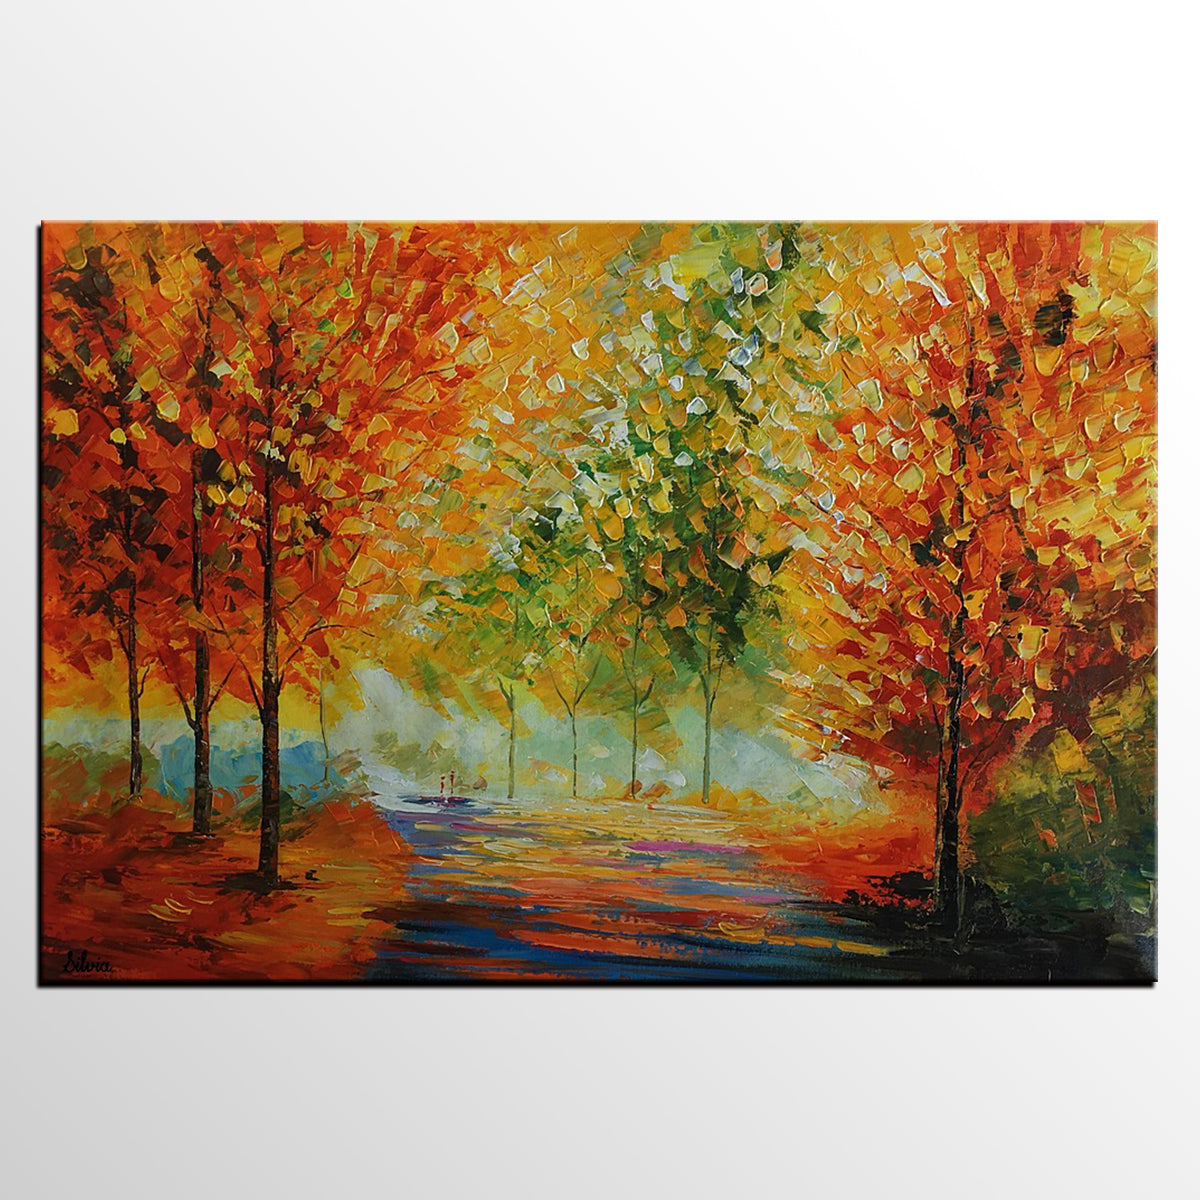 Abstract Painting, Landscape Painting, Art, Large Art, Canvas Art, Wall Art, Abstract Art, Large Painting, Oil Painting, Autumn Painting - Art Painting Canvas